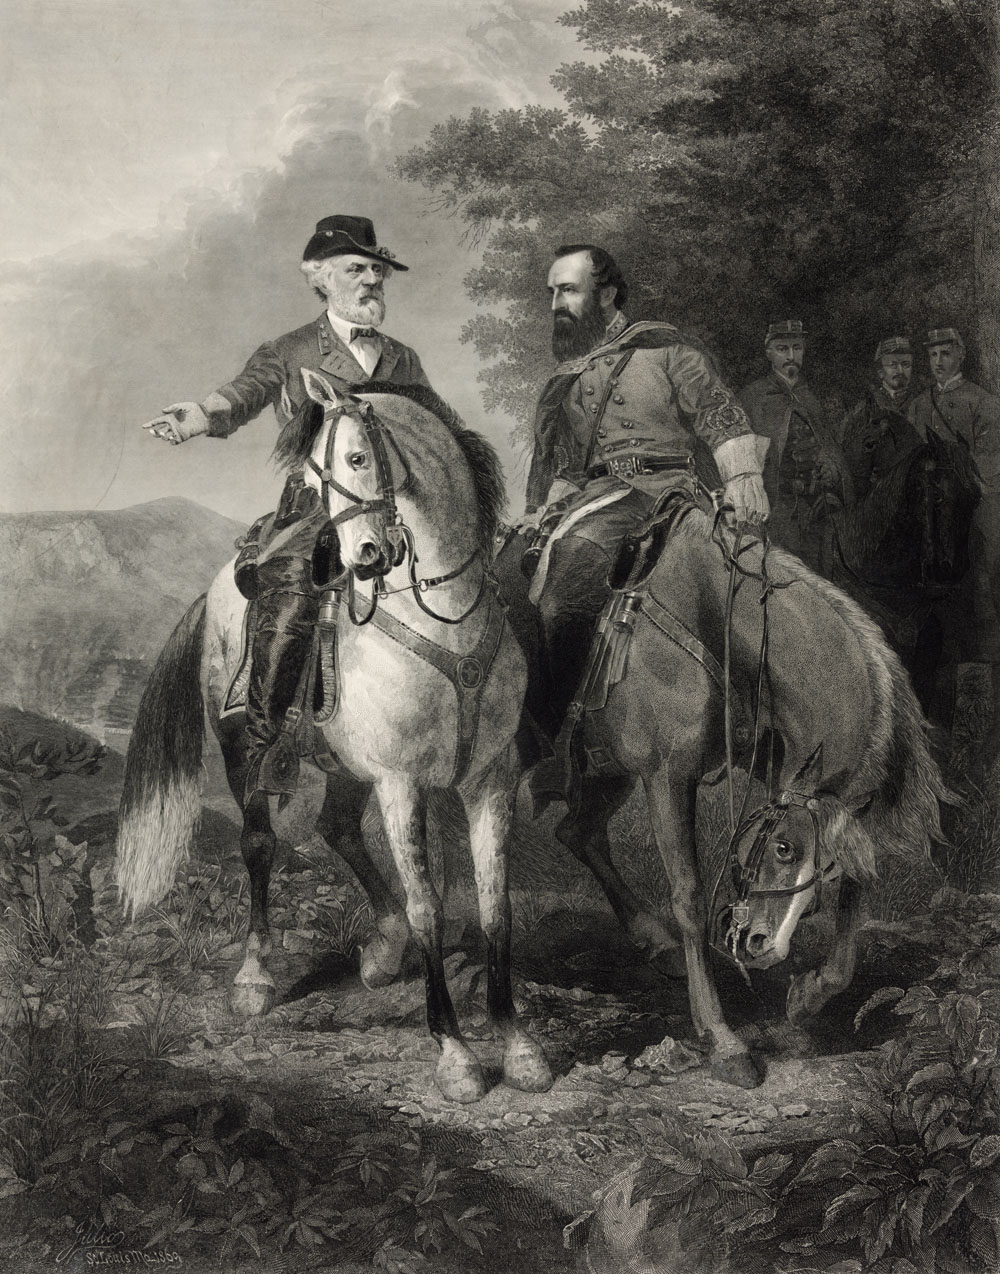 Is Robert E. Lee overrated as a military leader?